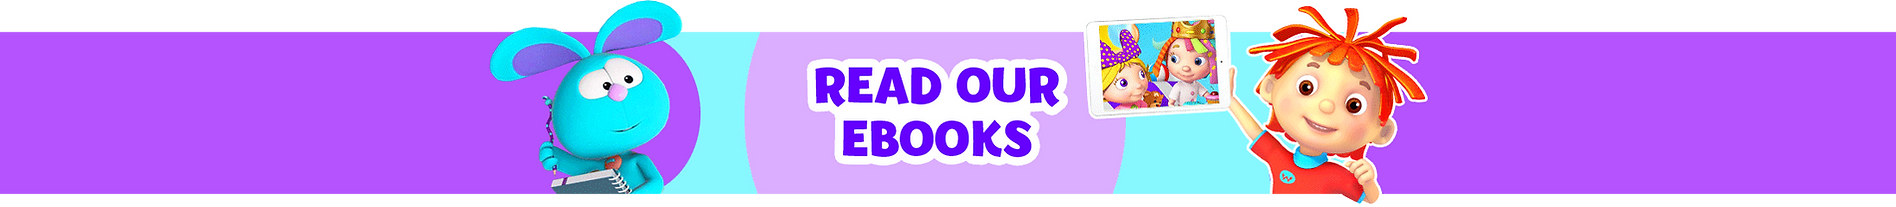 Read-Our-eBooks---Banner.png